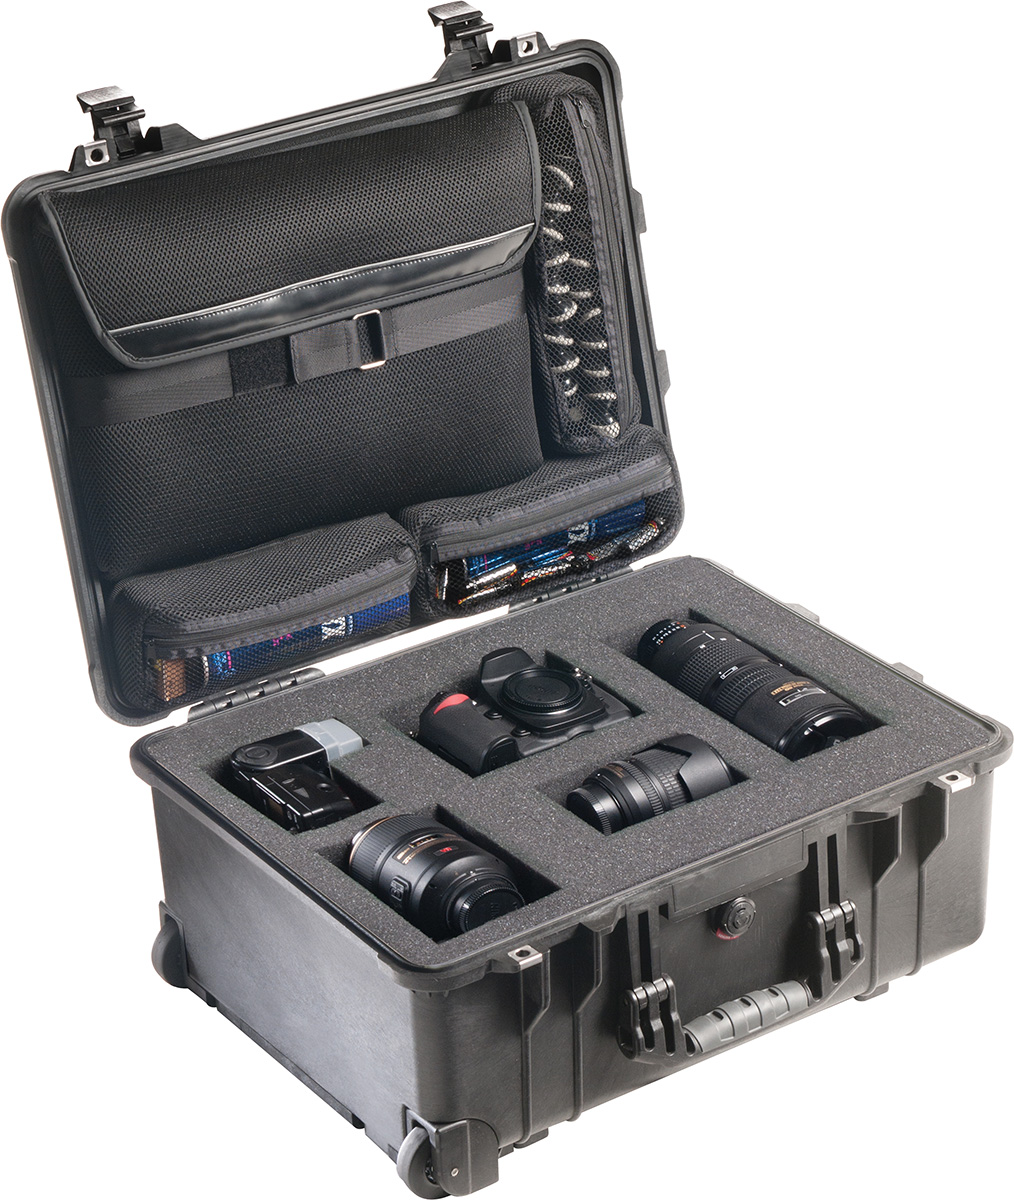 pelican peli products 1560LFC tough rolling protographer hard case